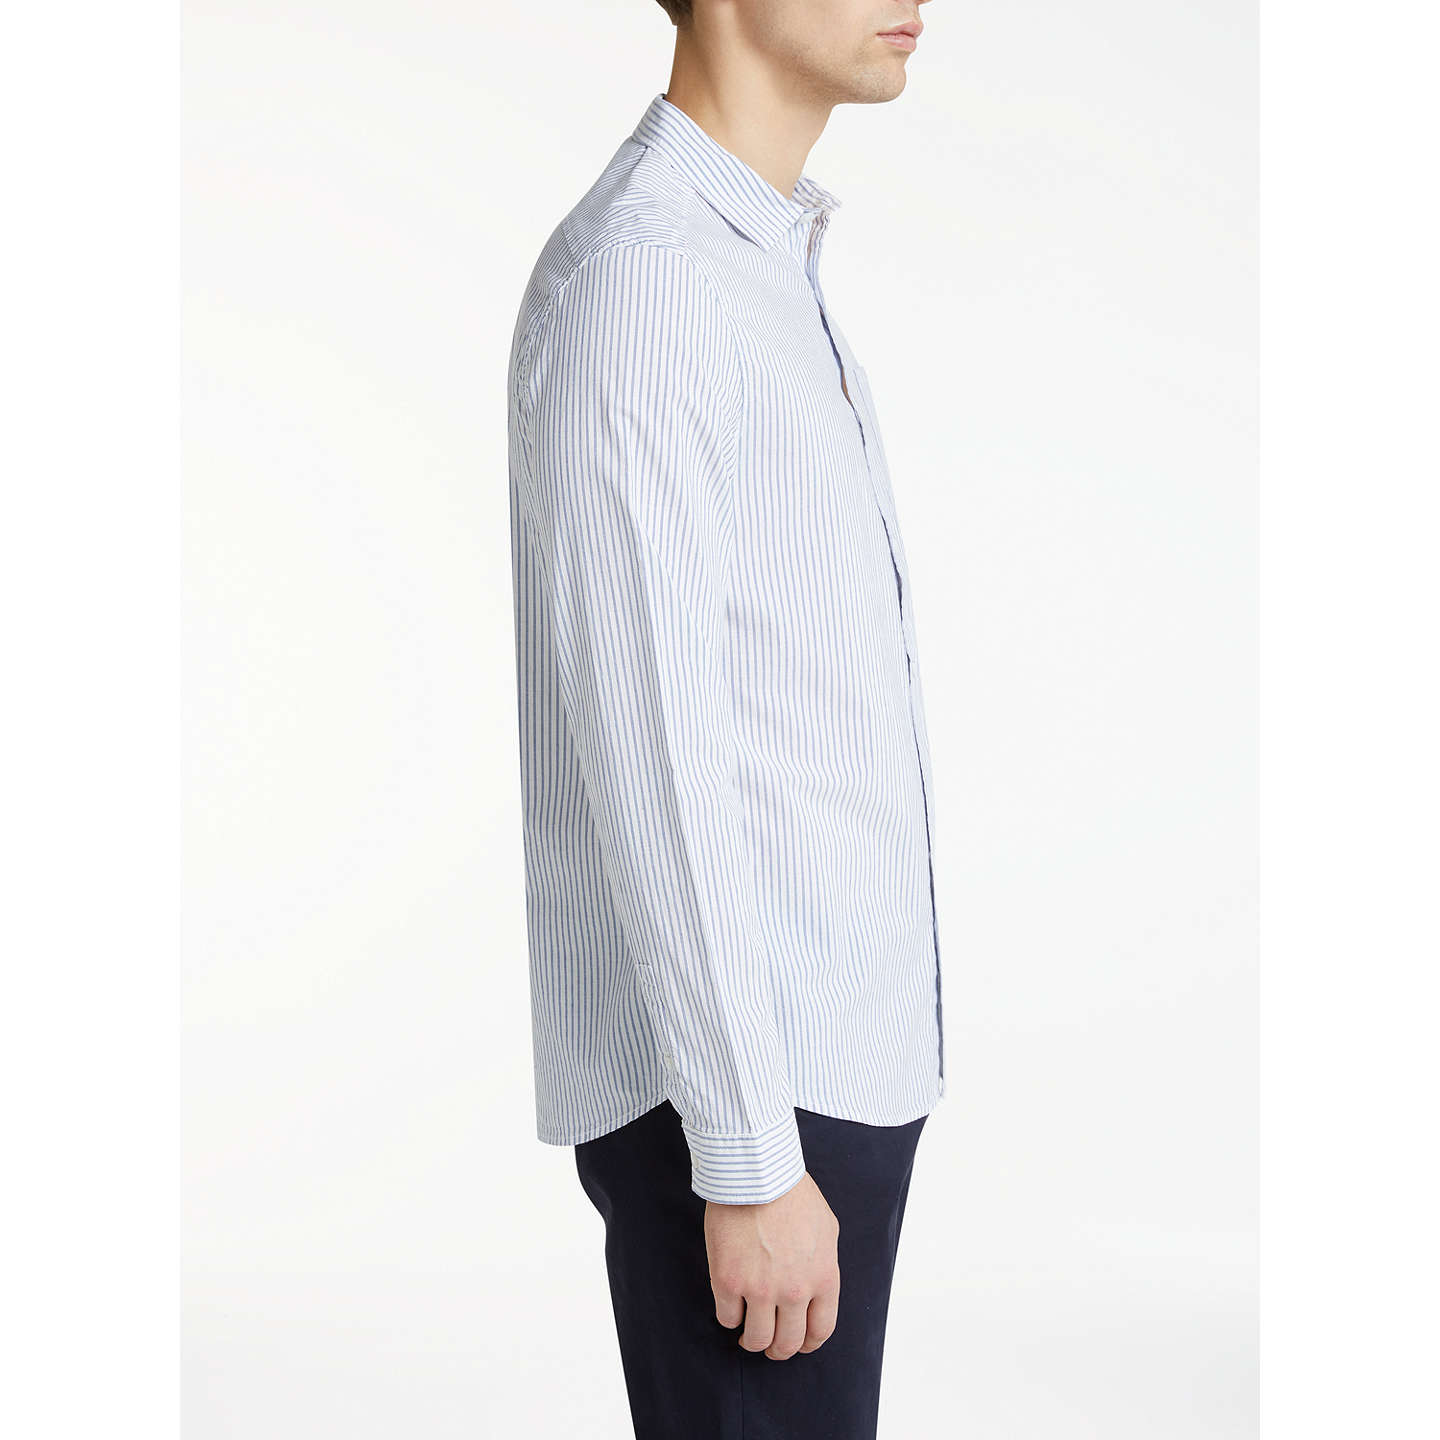 BuyKin by John Lewis Stripe Slim Fit Shirt, White/Blue, S Online at johnlewis.com